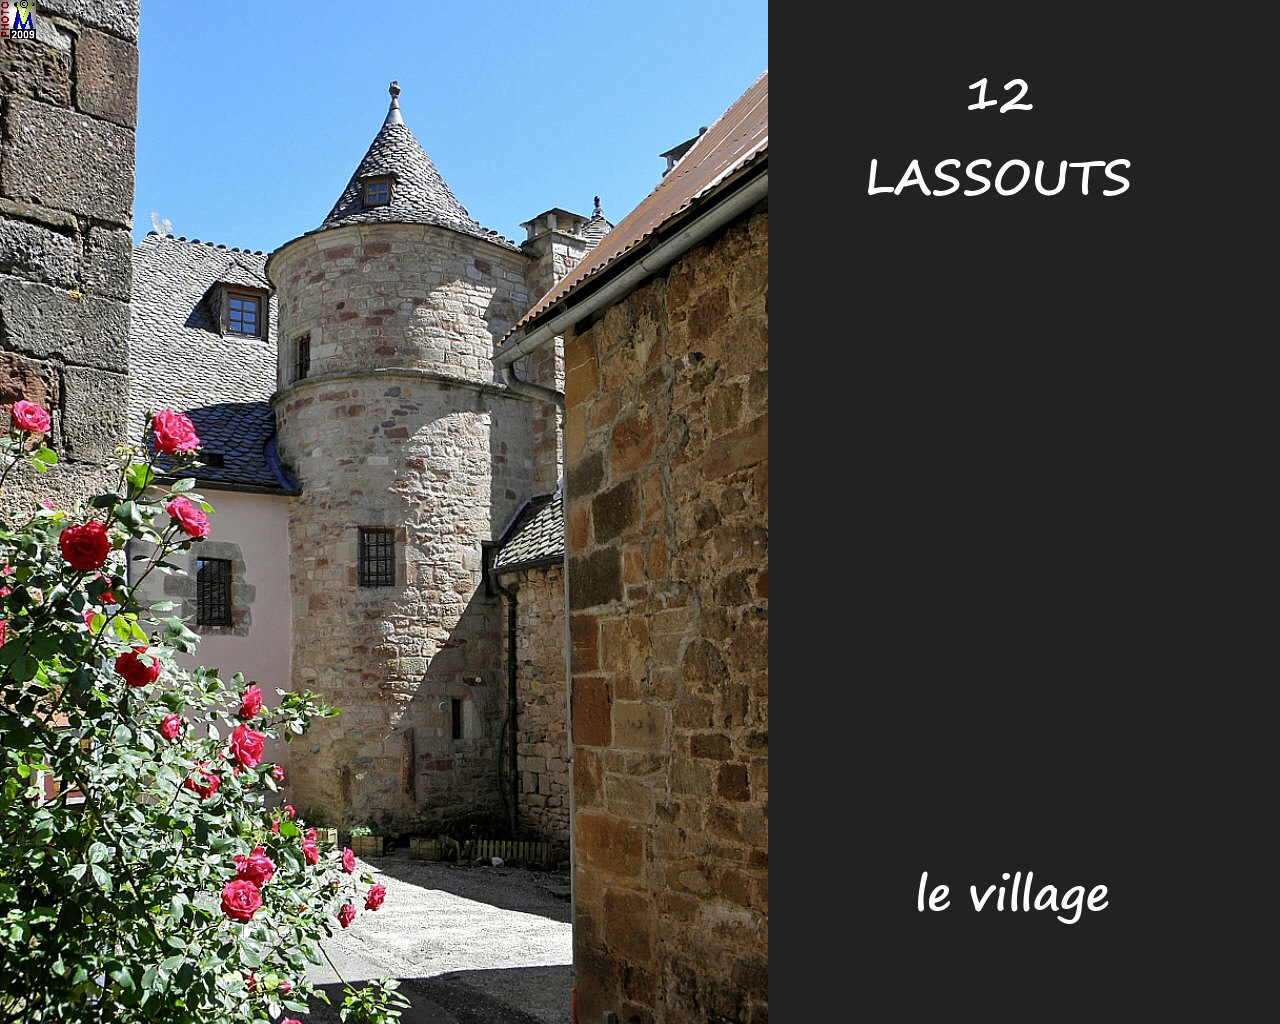 12LASSOUTS_village_106.jpg